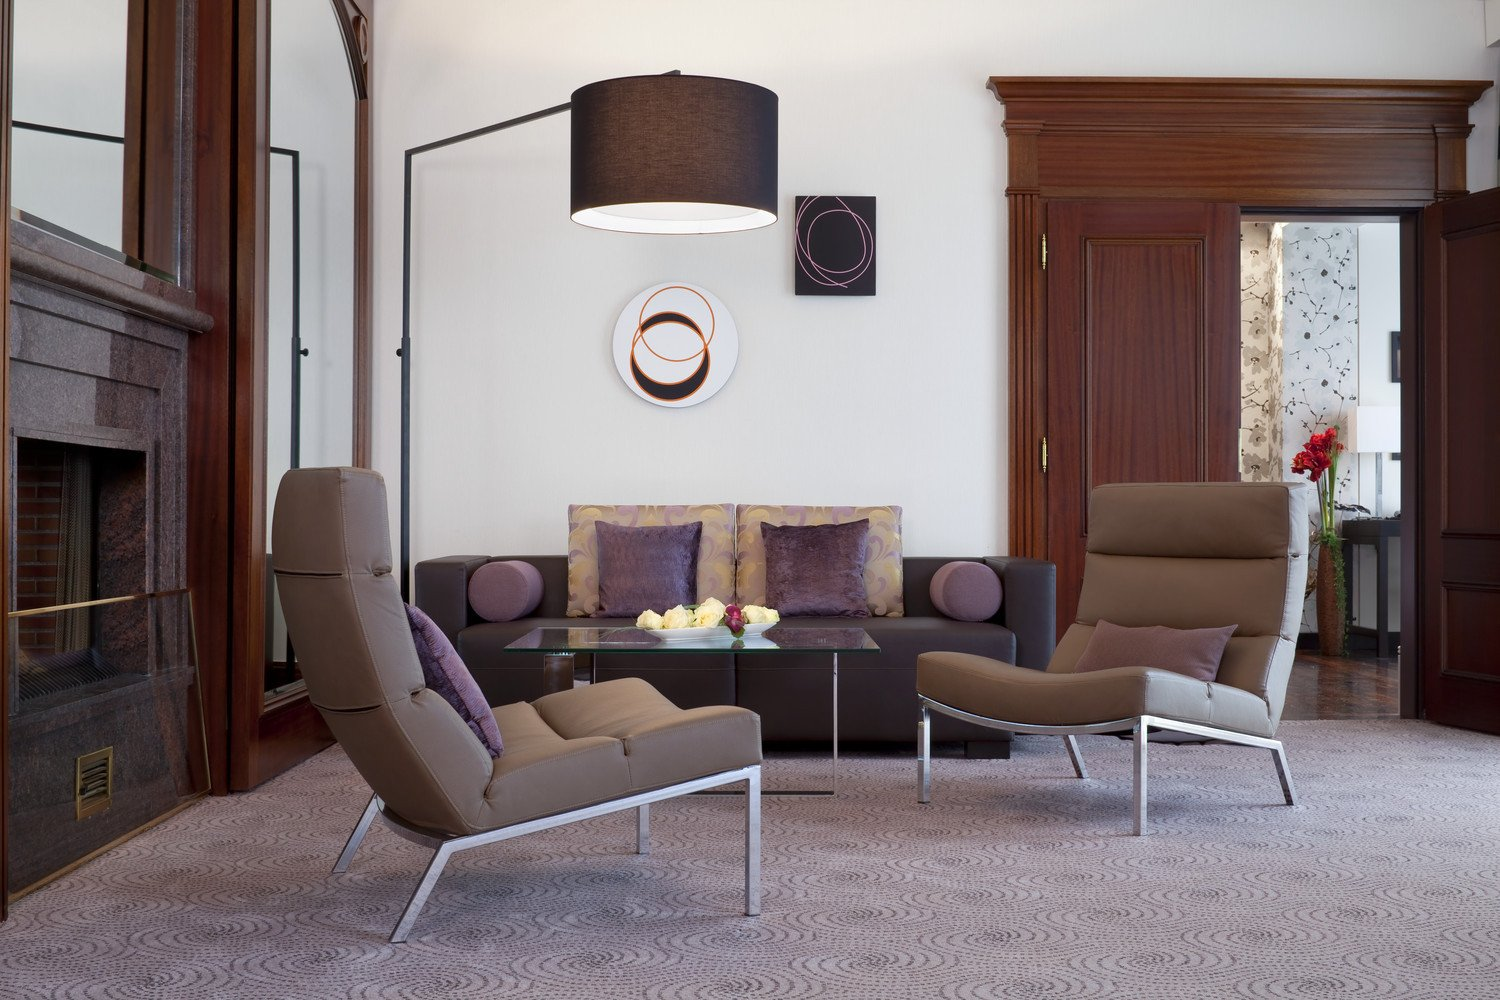 Comfortable Living Room Seating New fortable Chairs for Living Room